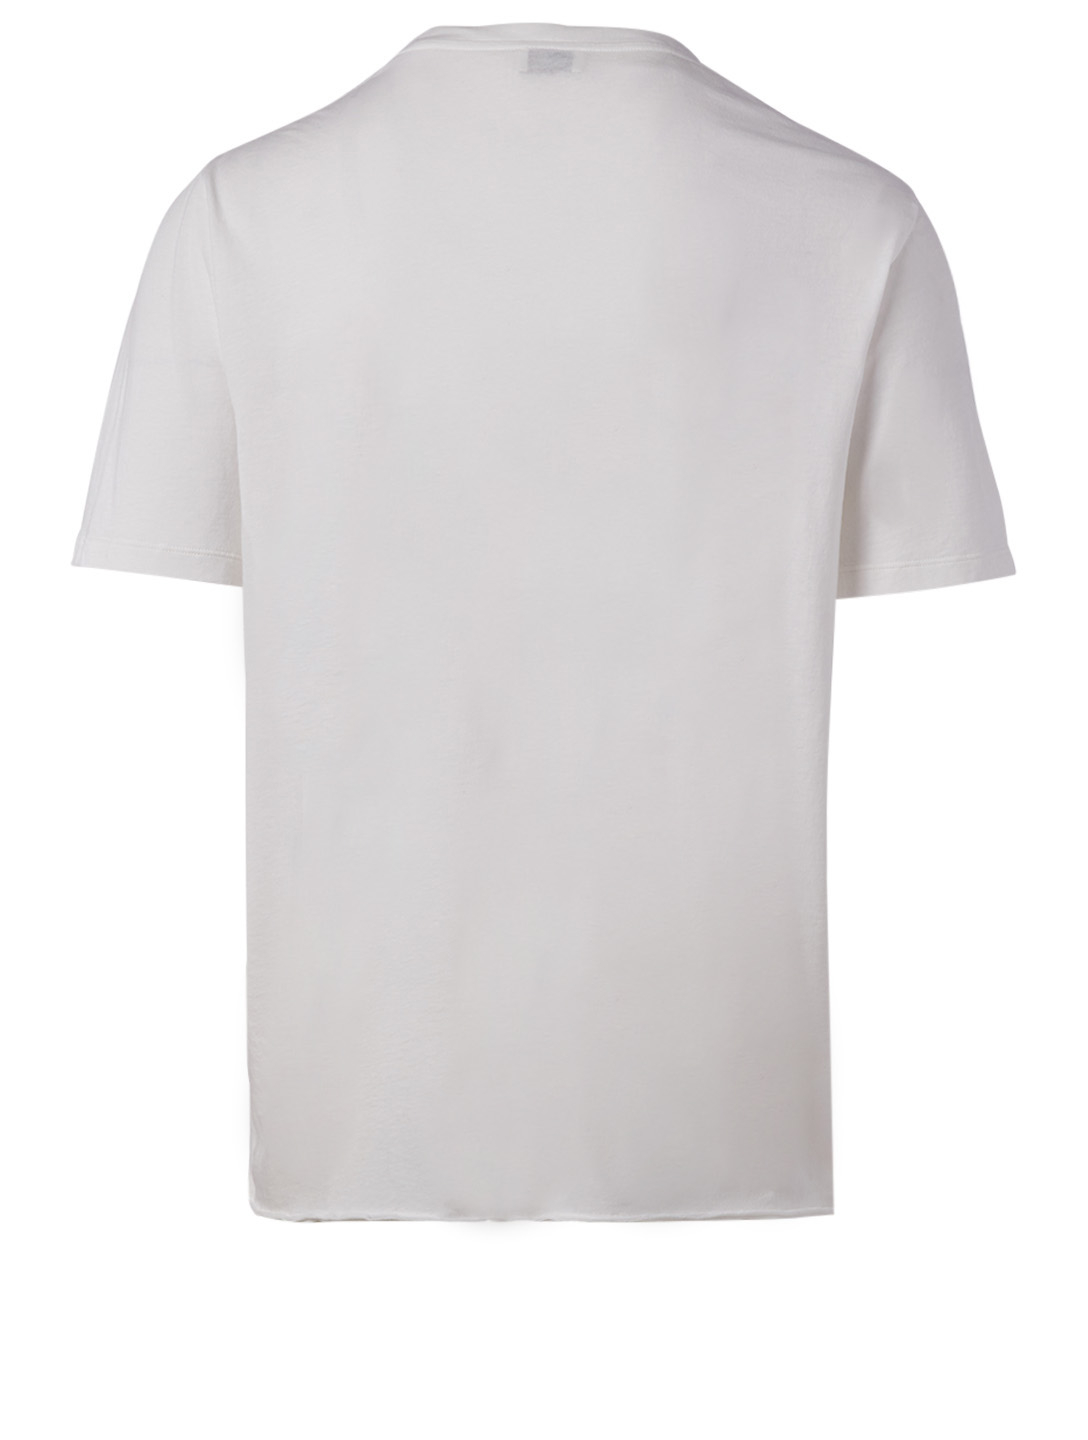 SAINT LAURENT The Smith Cotton T-Shirt Men's White